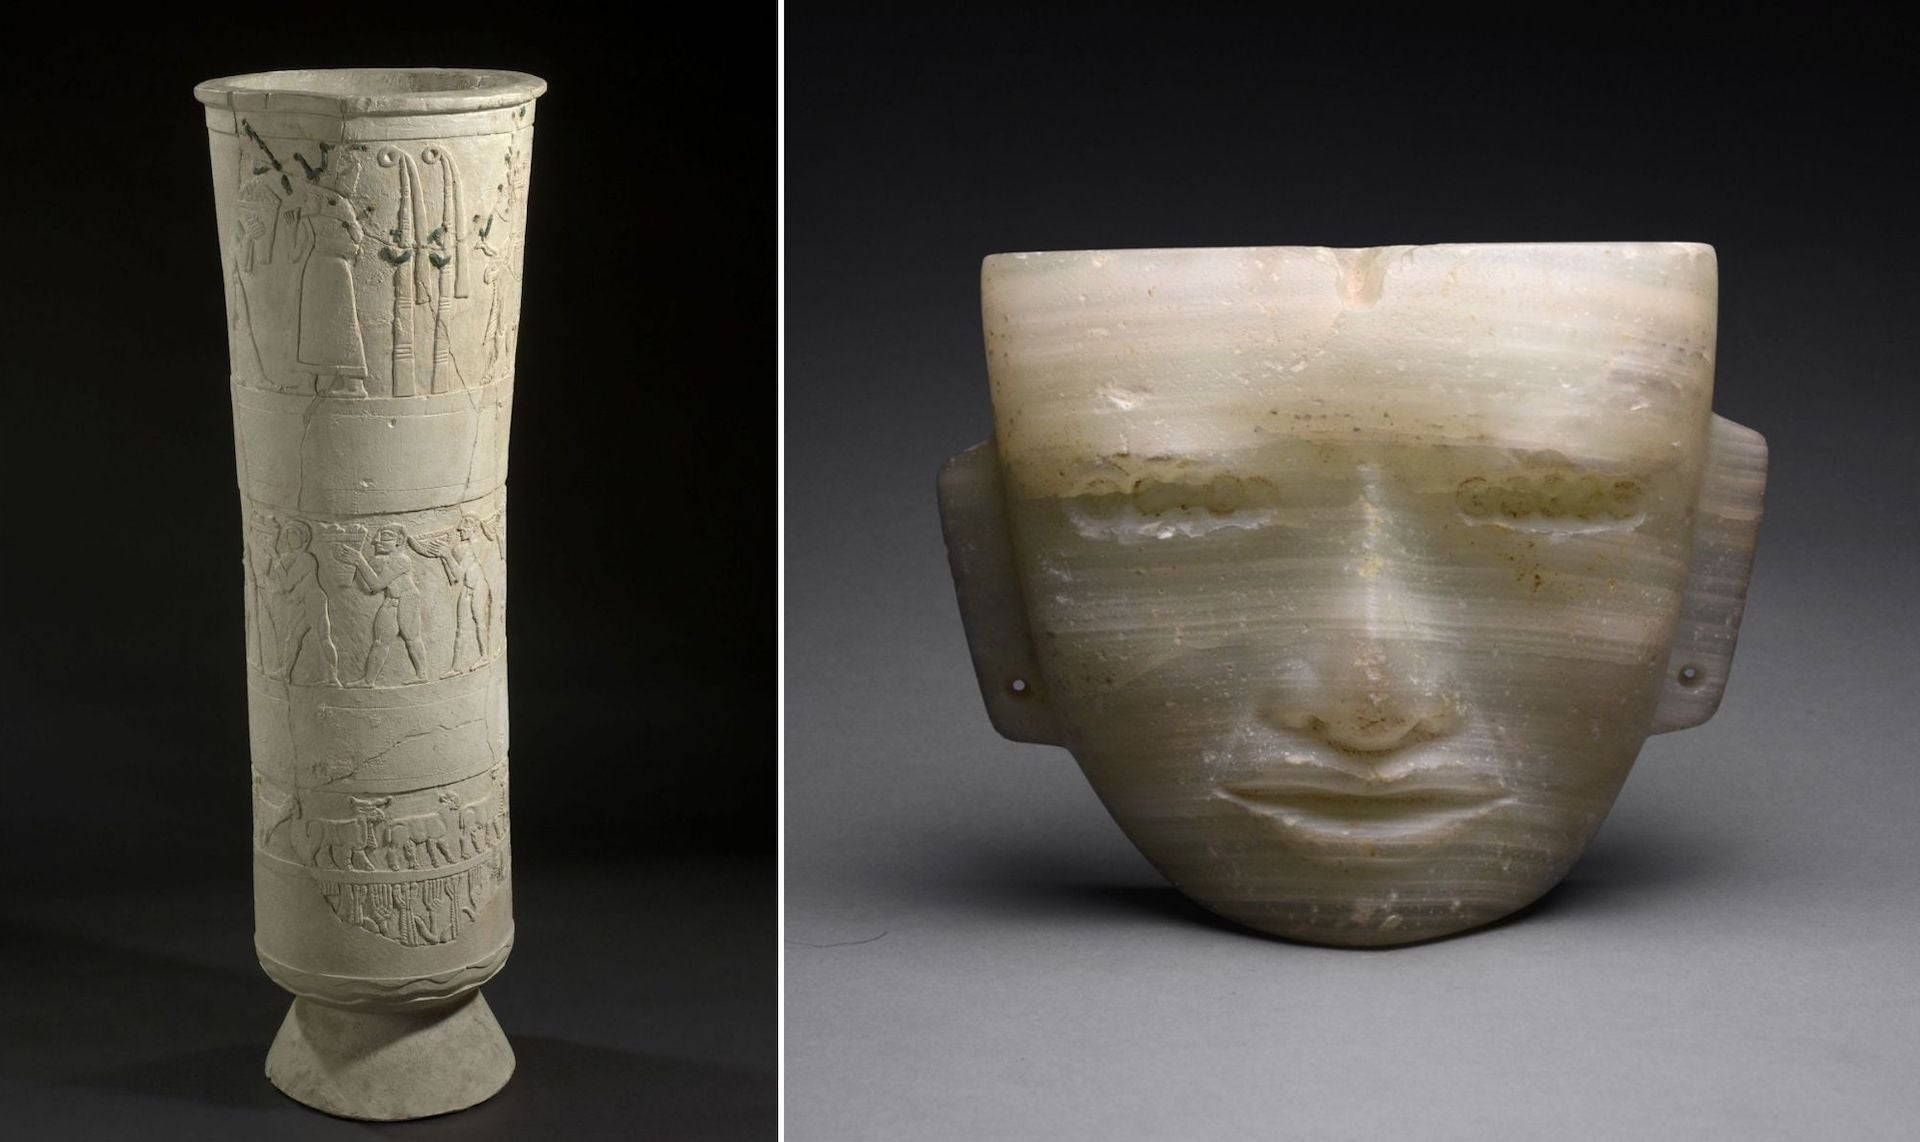 Warka Vase from the Temple of Inanna, ca. 3,000 BCE. Photo © National Museum of Iraq. Teotihuacan Alabaster Mask, ca. 300-700 CE. Photo © Barakat Gallery